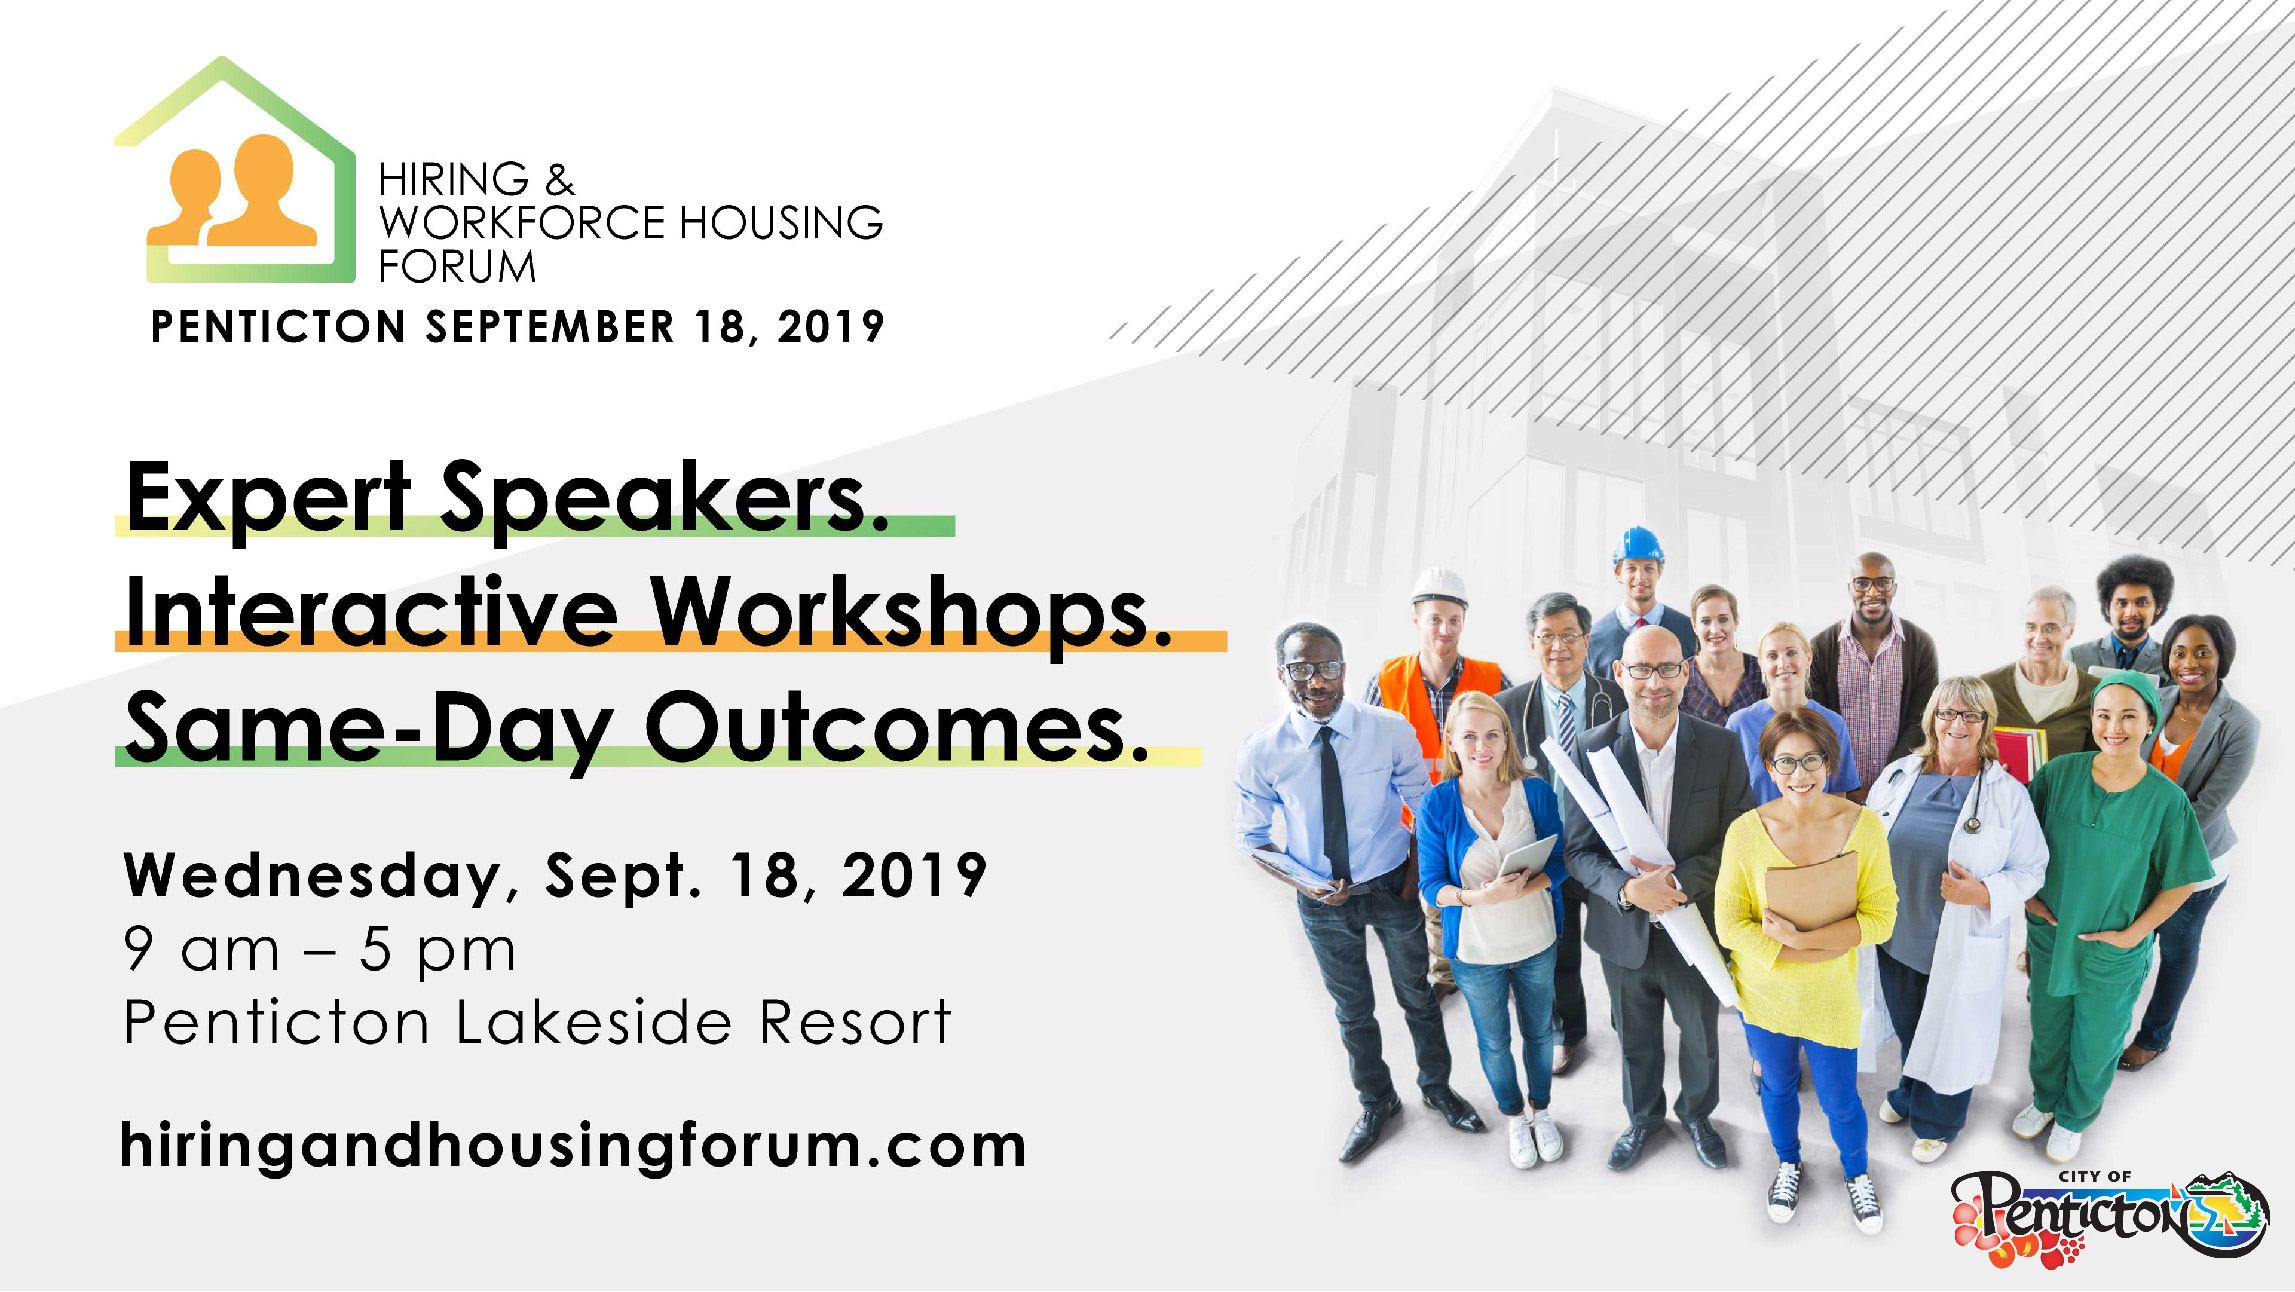 Hiring and Workforce Housing Forum